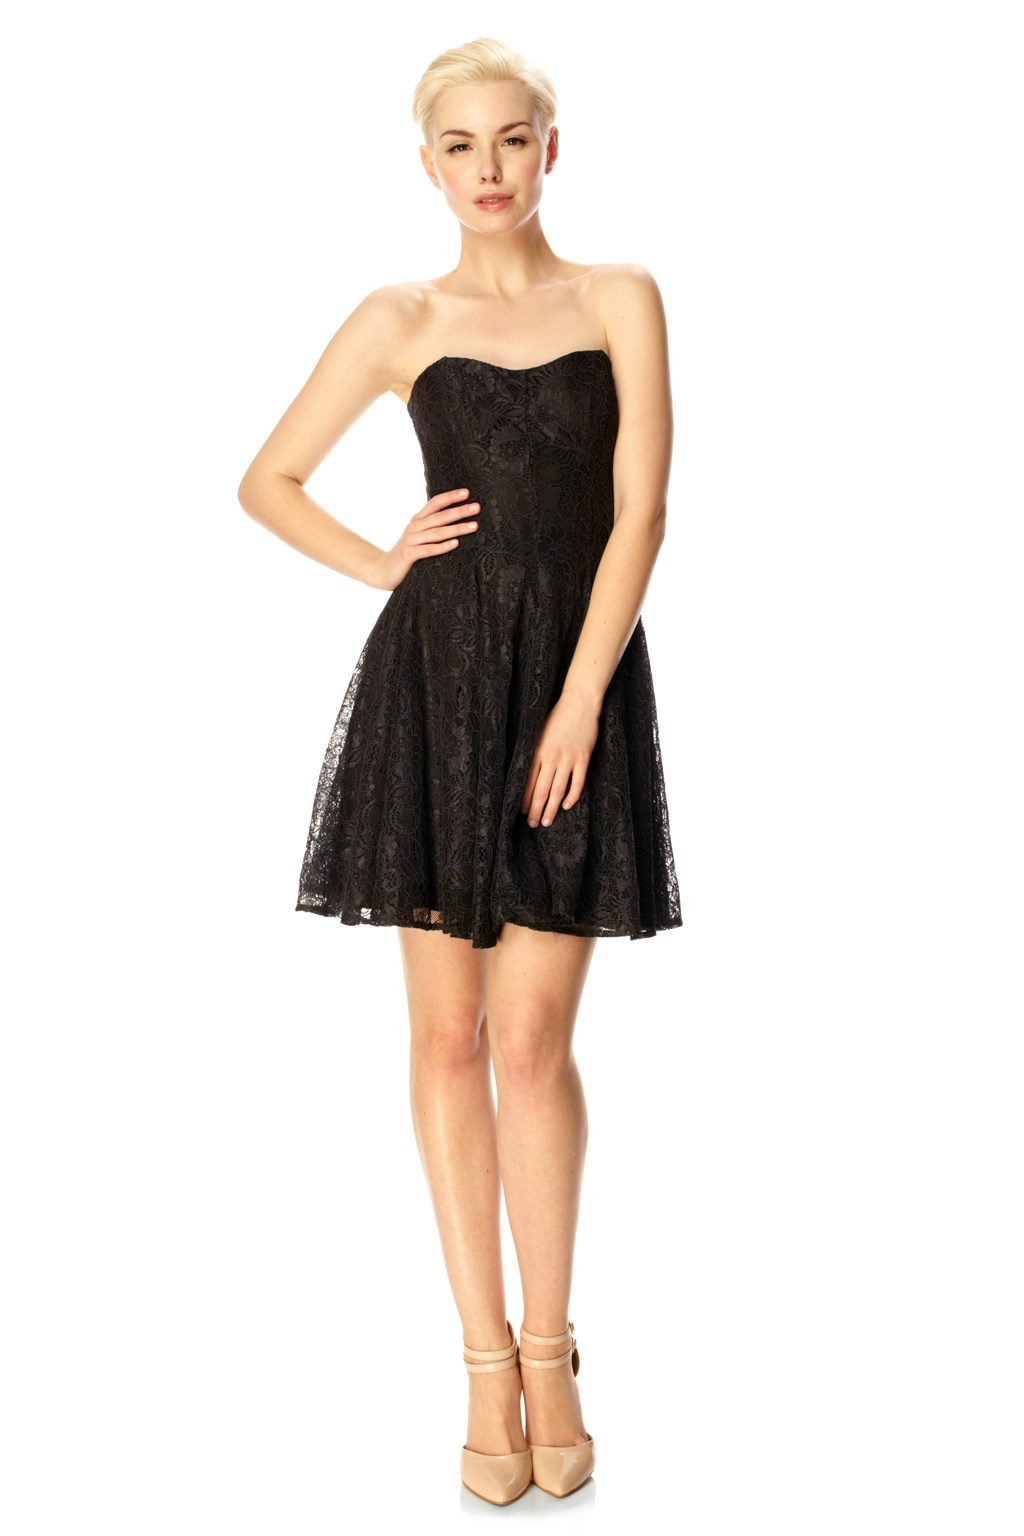 Find great deals on eBay for new york and company strapless dress. Shop with confidence.